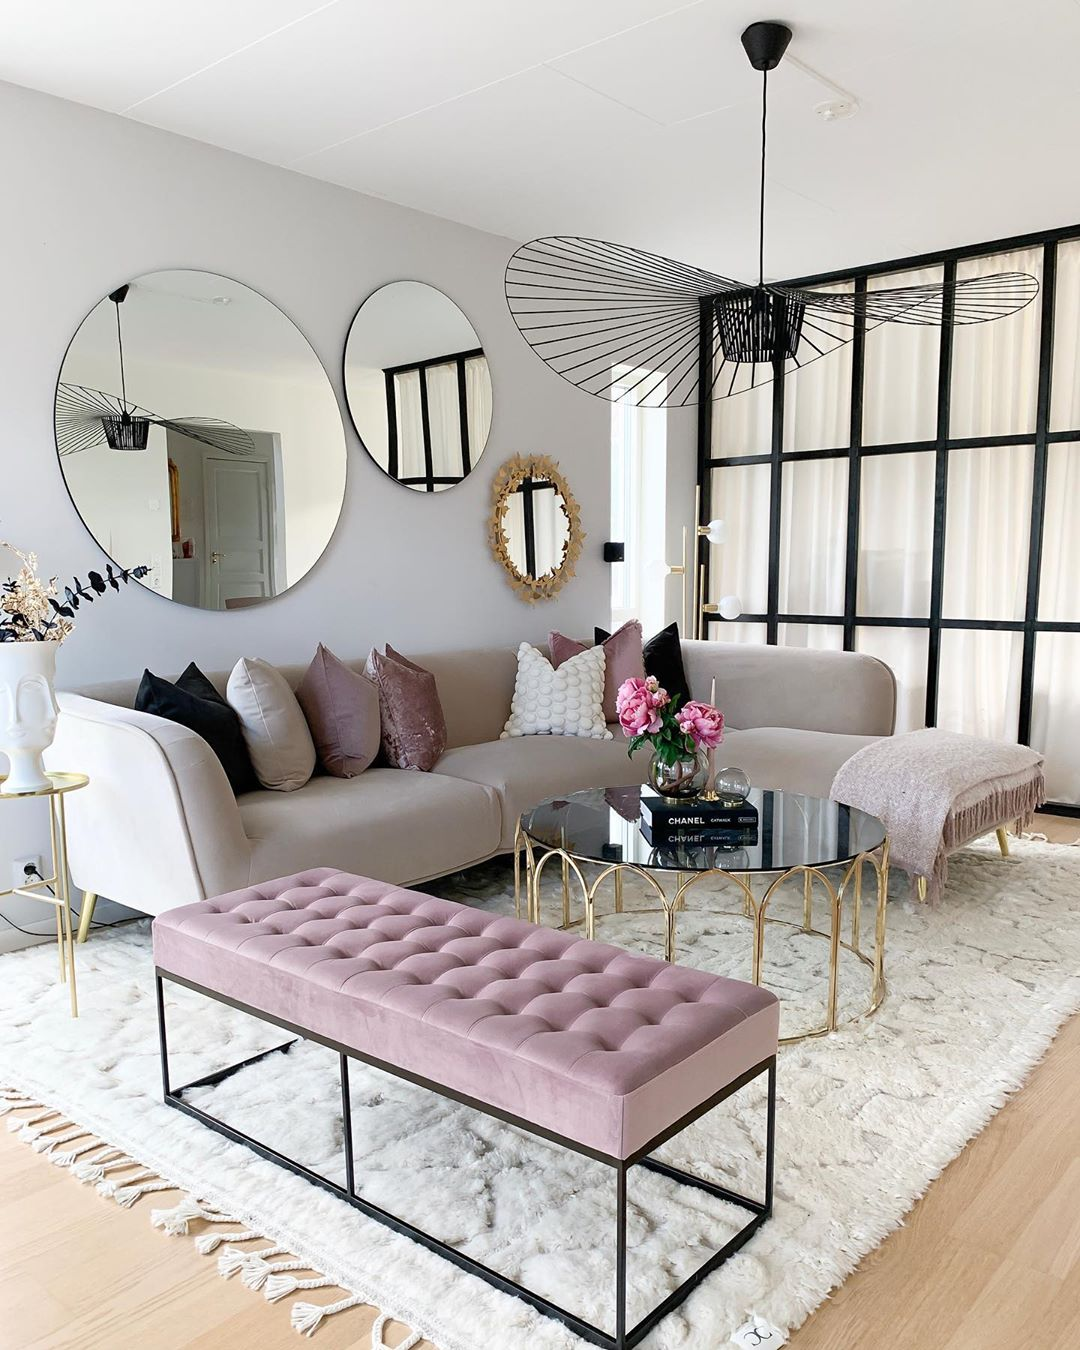 Sofa Design 2021 Top Types, Styles and Stylish Colors of Sofa Trends 2021 39+ Photos